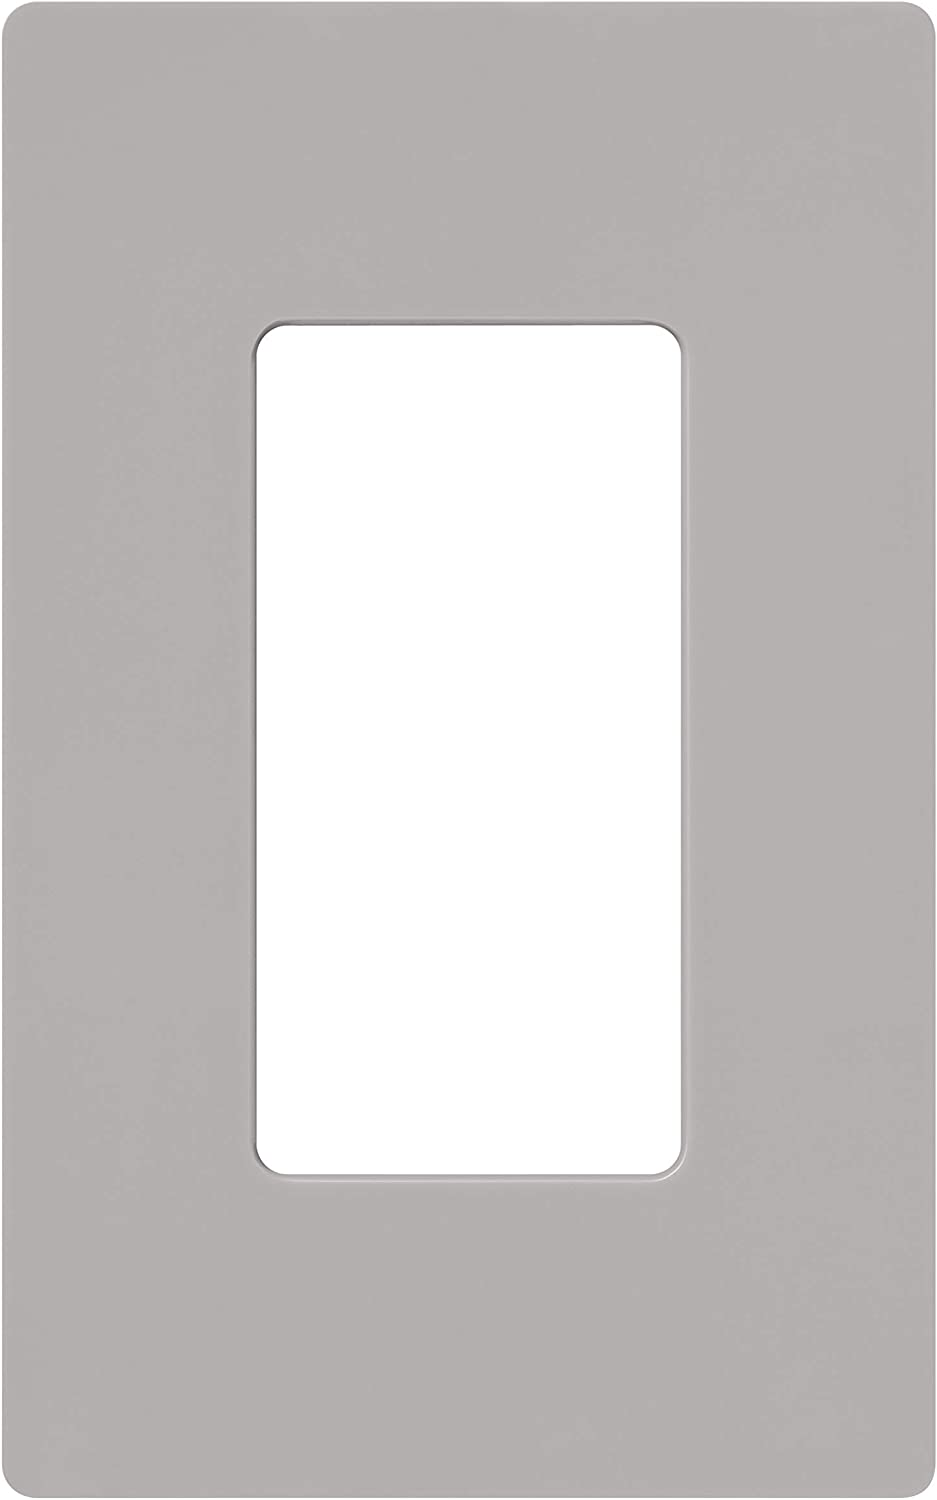 Lutron Claro 1 Gang Decorator Wallplate, CW-1-GR, Gray